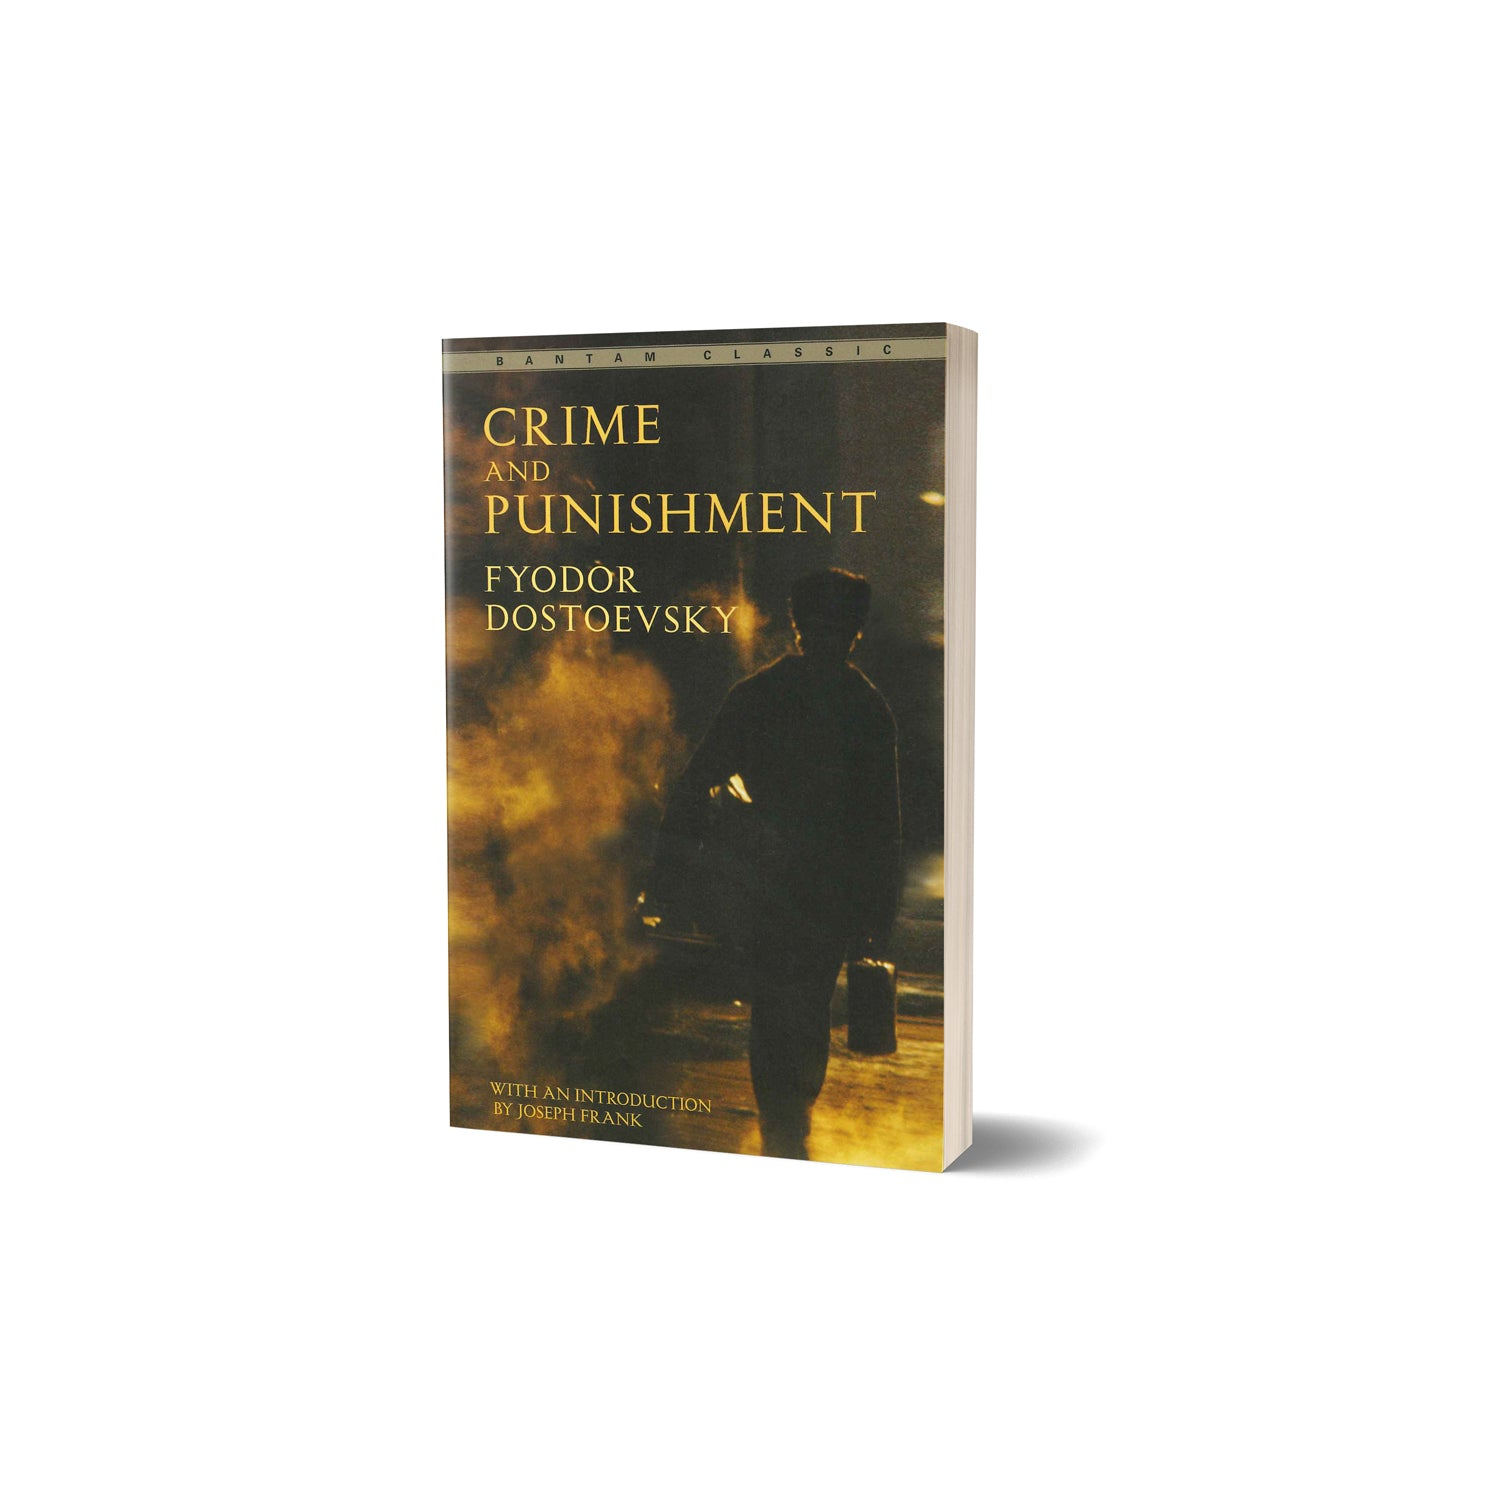 Fyodor Dostoevsky 'Crime and Punishment'